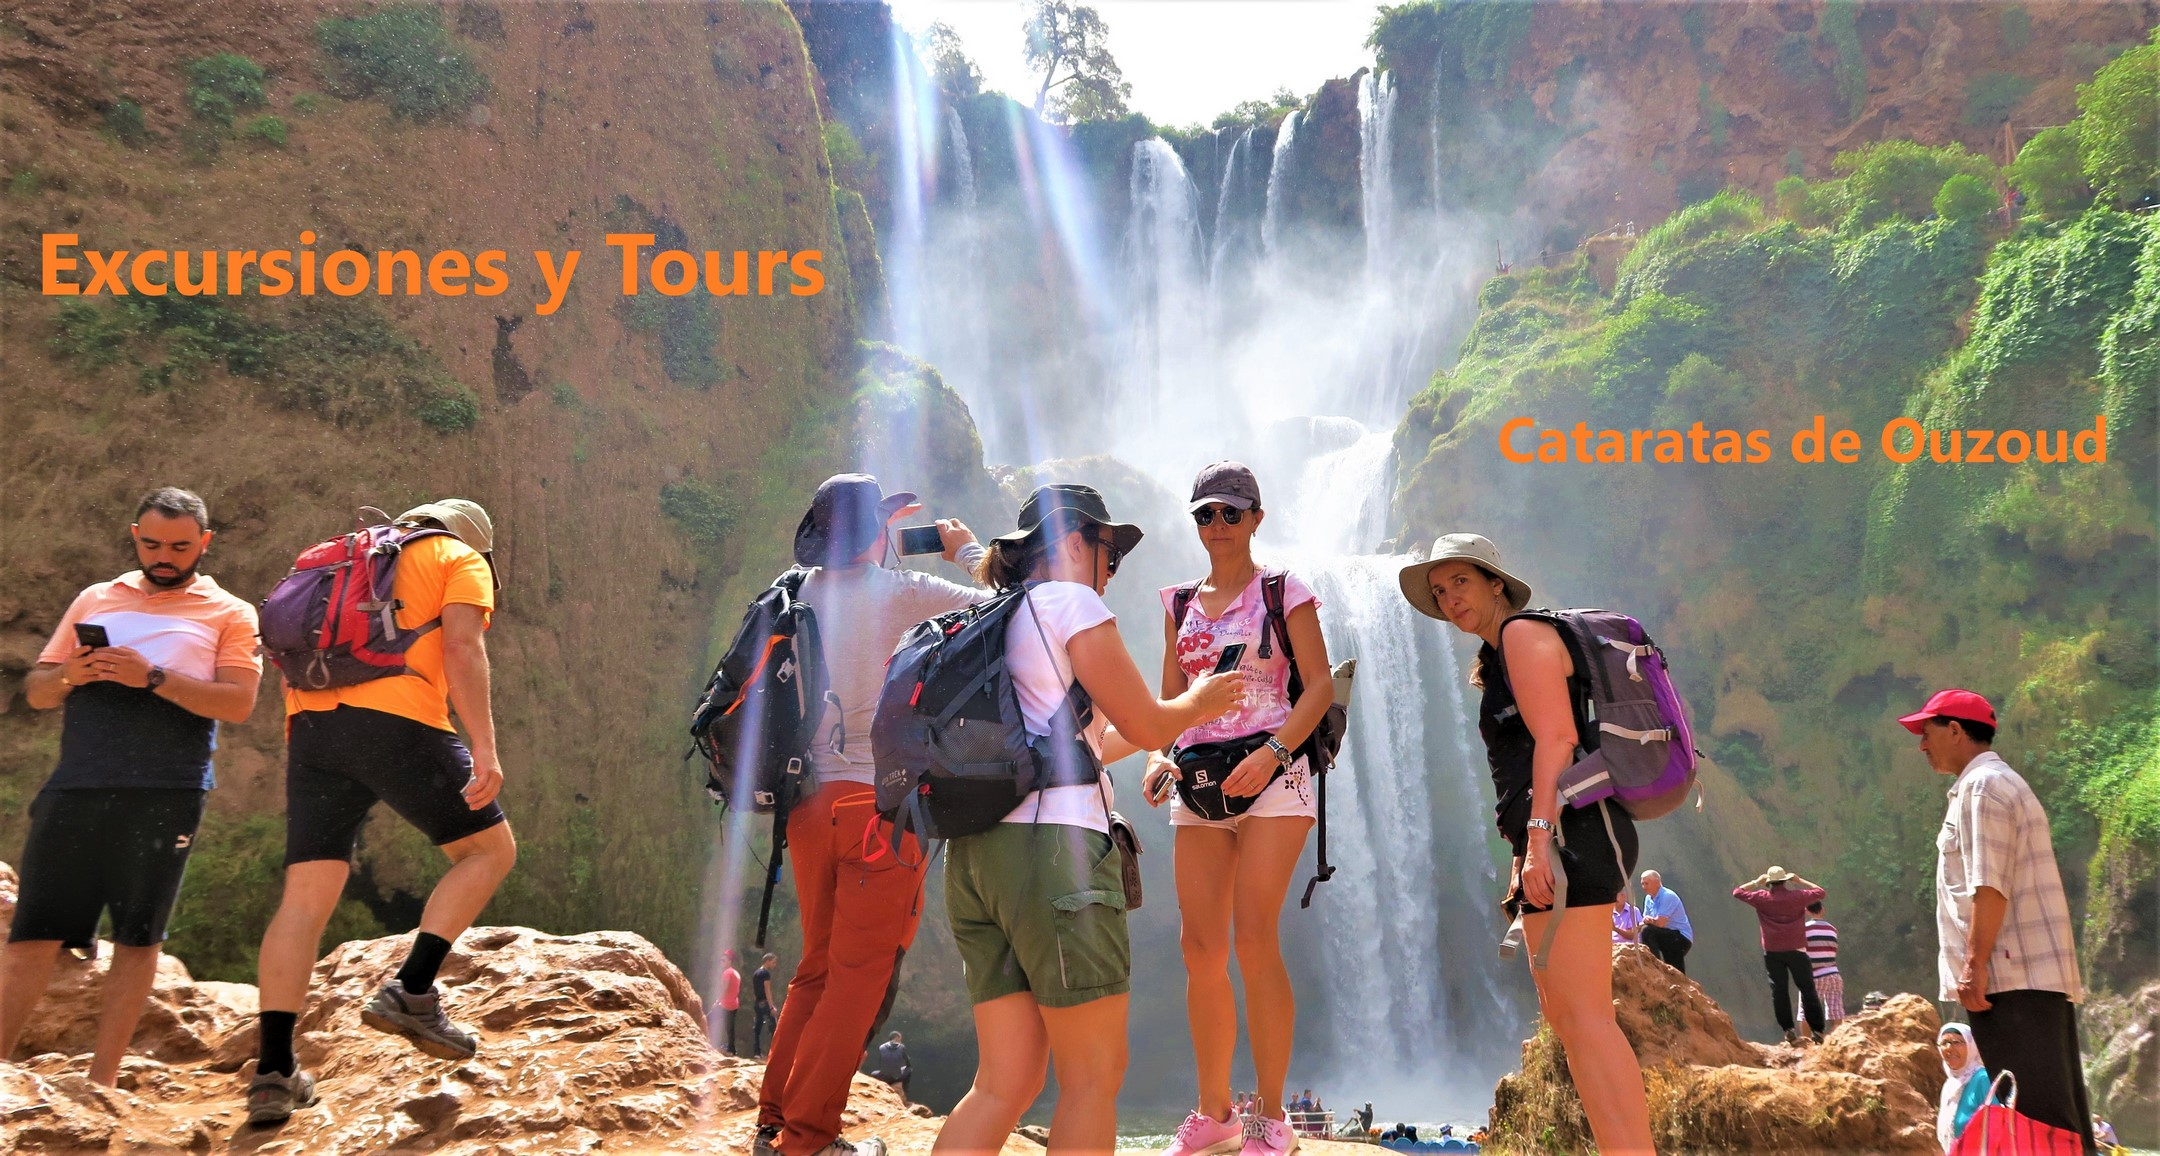 Excursiones y Tours